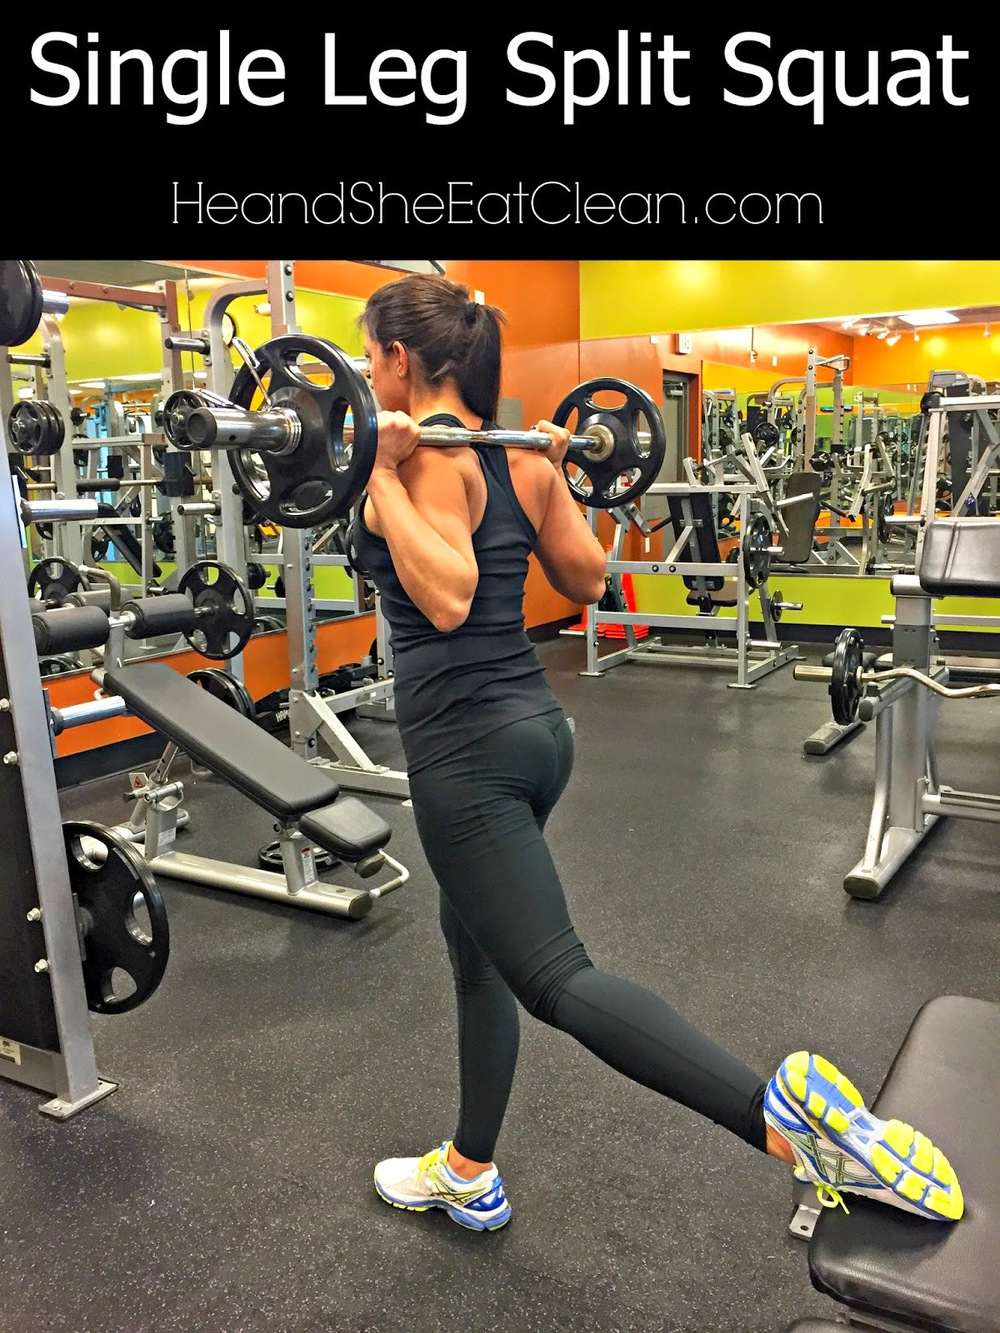 single-leg-split-squat-workout-fitness-lift-weights-he-and-she-eat-clean-she-sweats-workout-plan-fitness-lifestyle.jpg